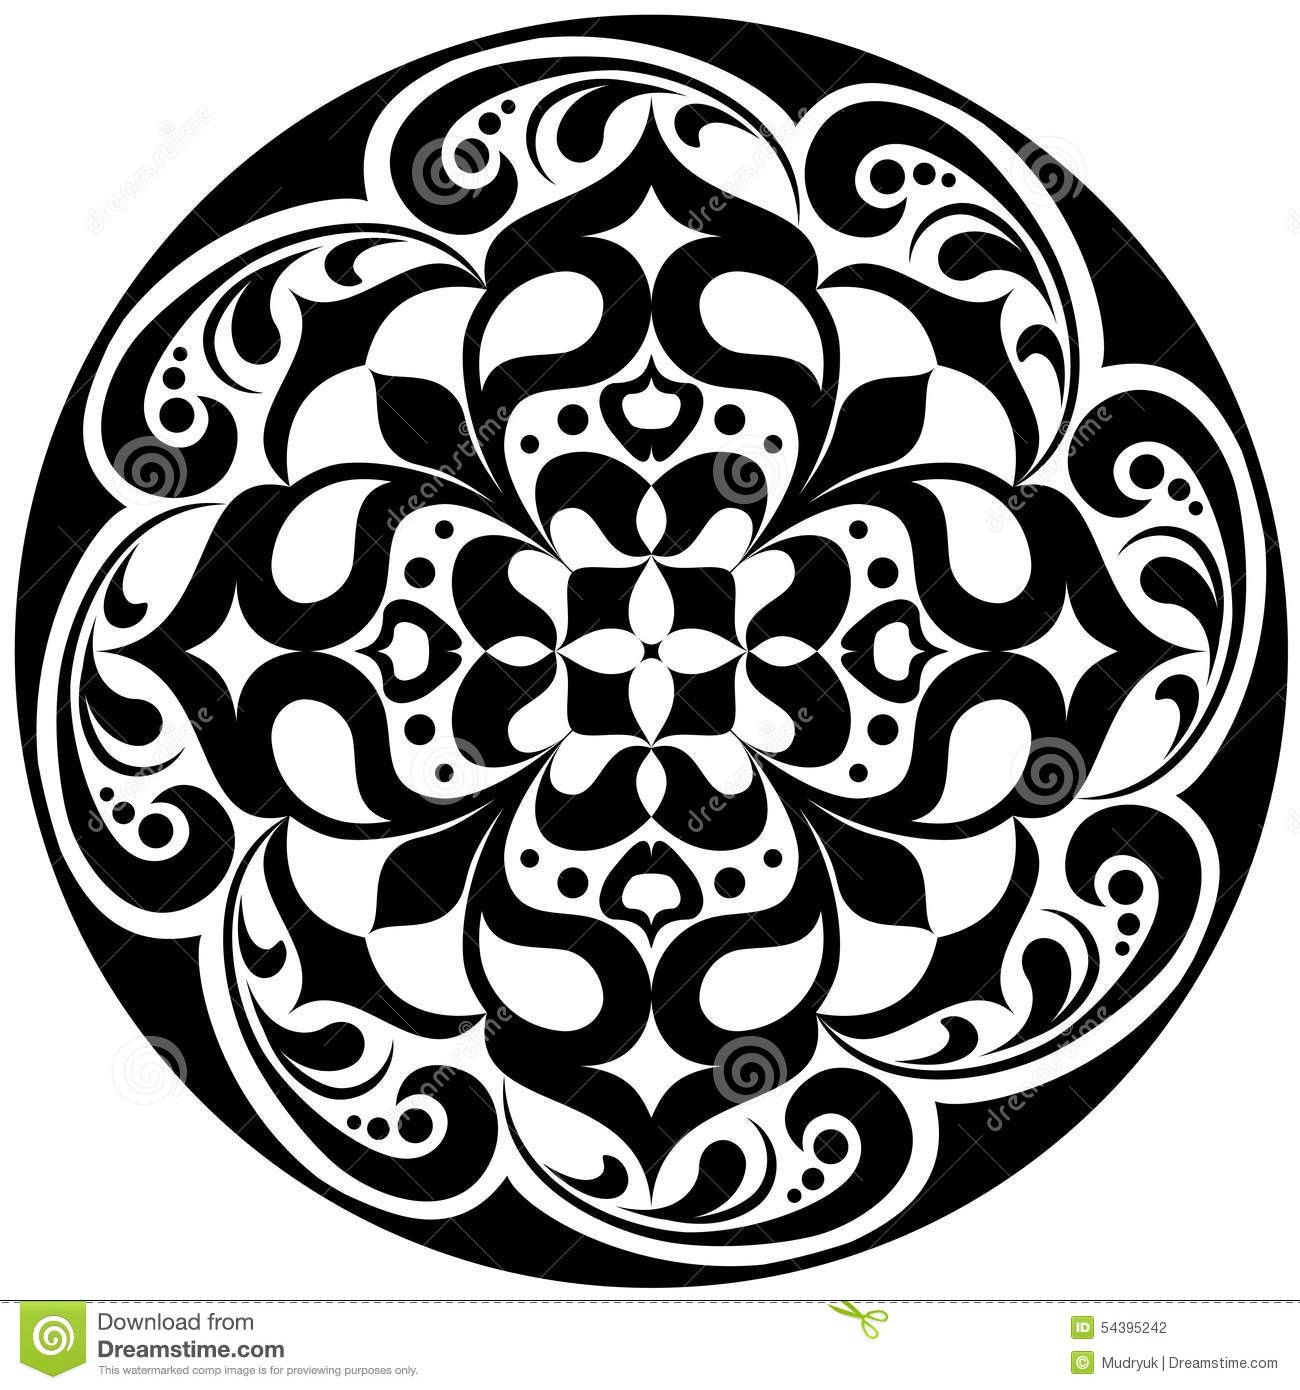 kaleidoskopisches blumen tatoo mandala in schwarzweiss vektor abbildung illustration von. Black Bedroom Furniture Sets. Home Design Ideas